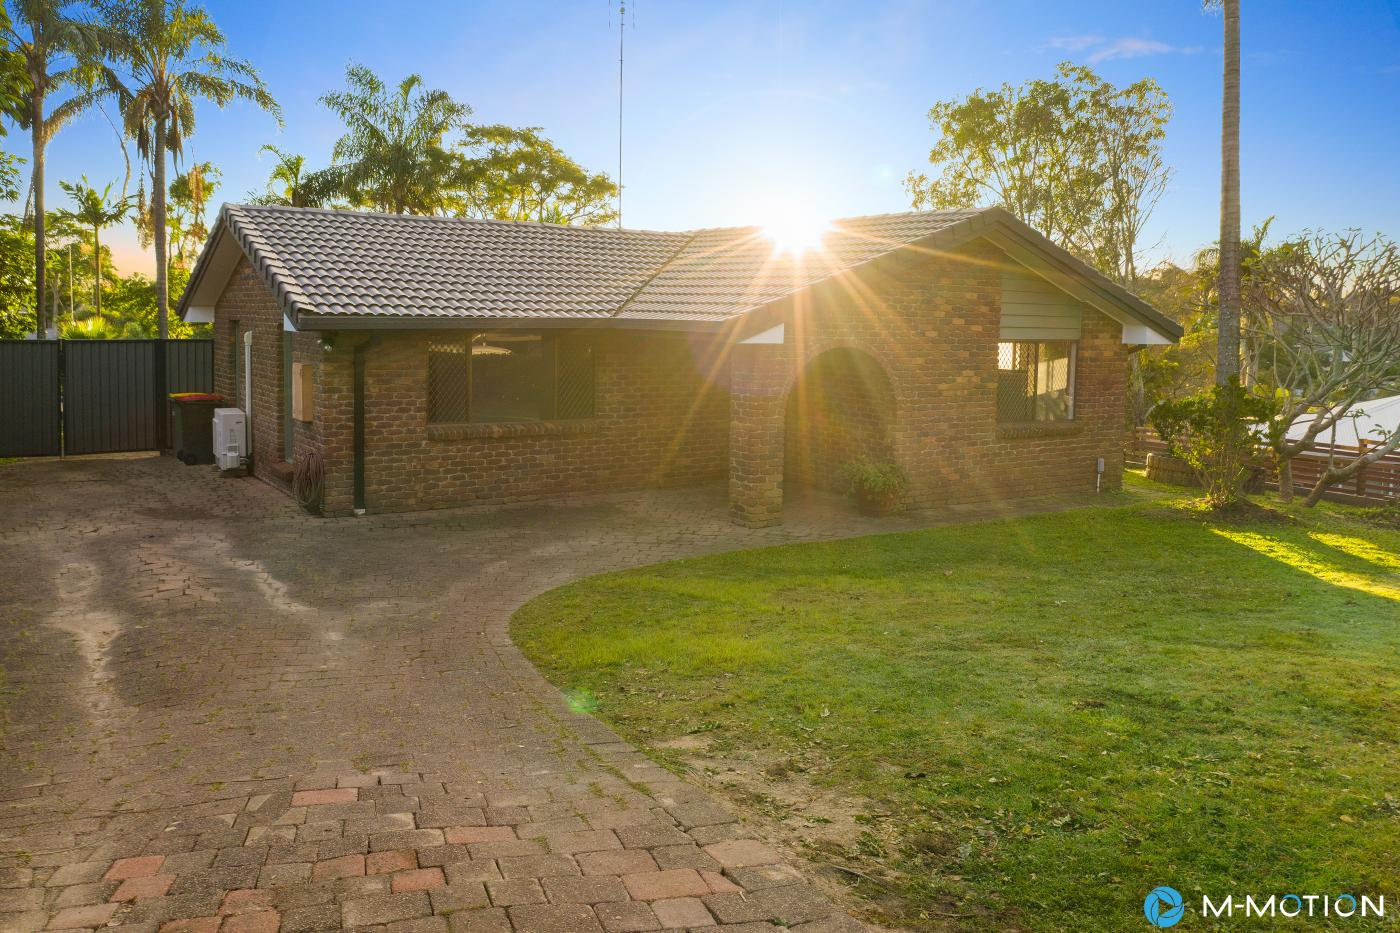 6 Dearne Place, Cararra, M-Motion Real Estate James Ford